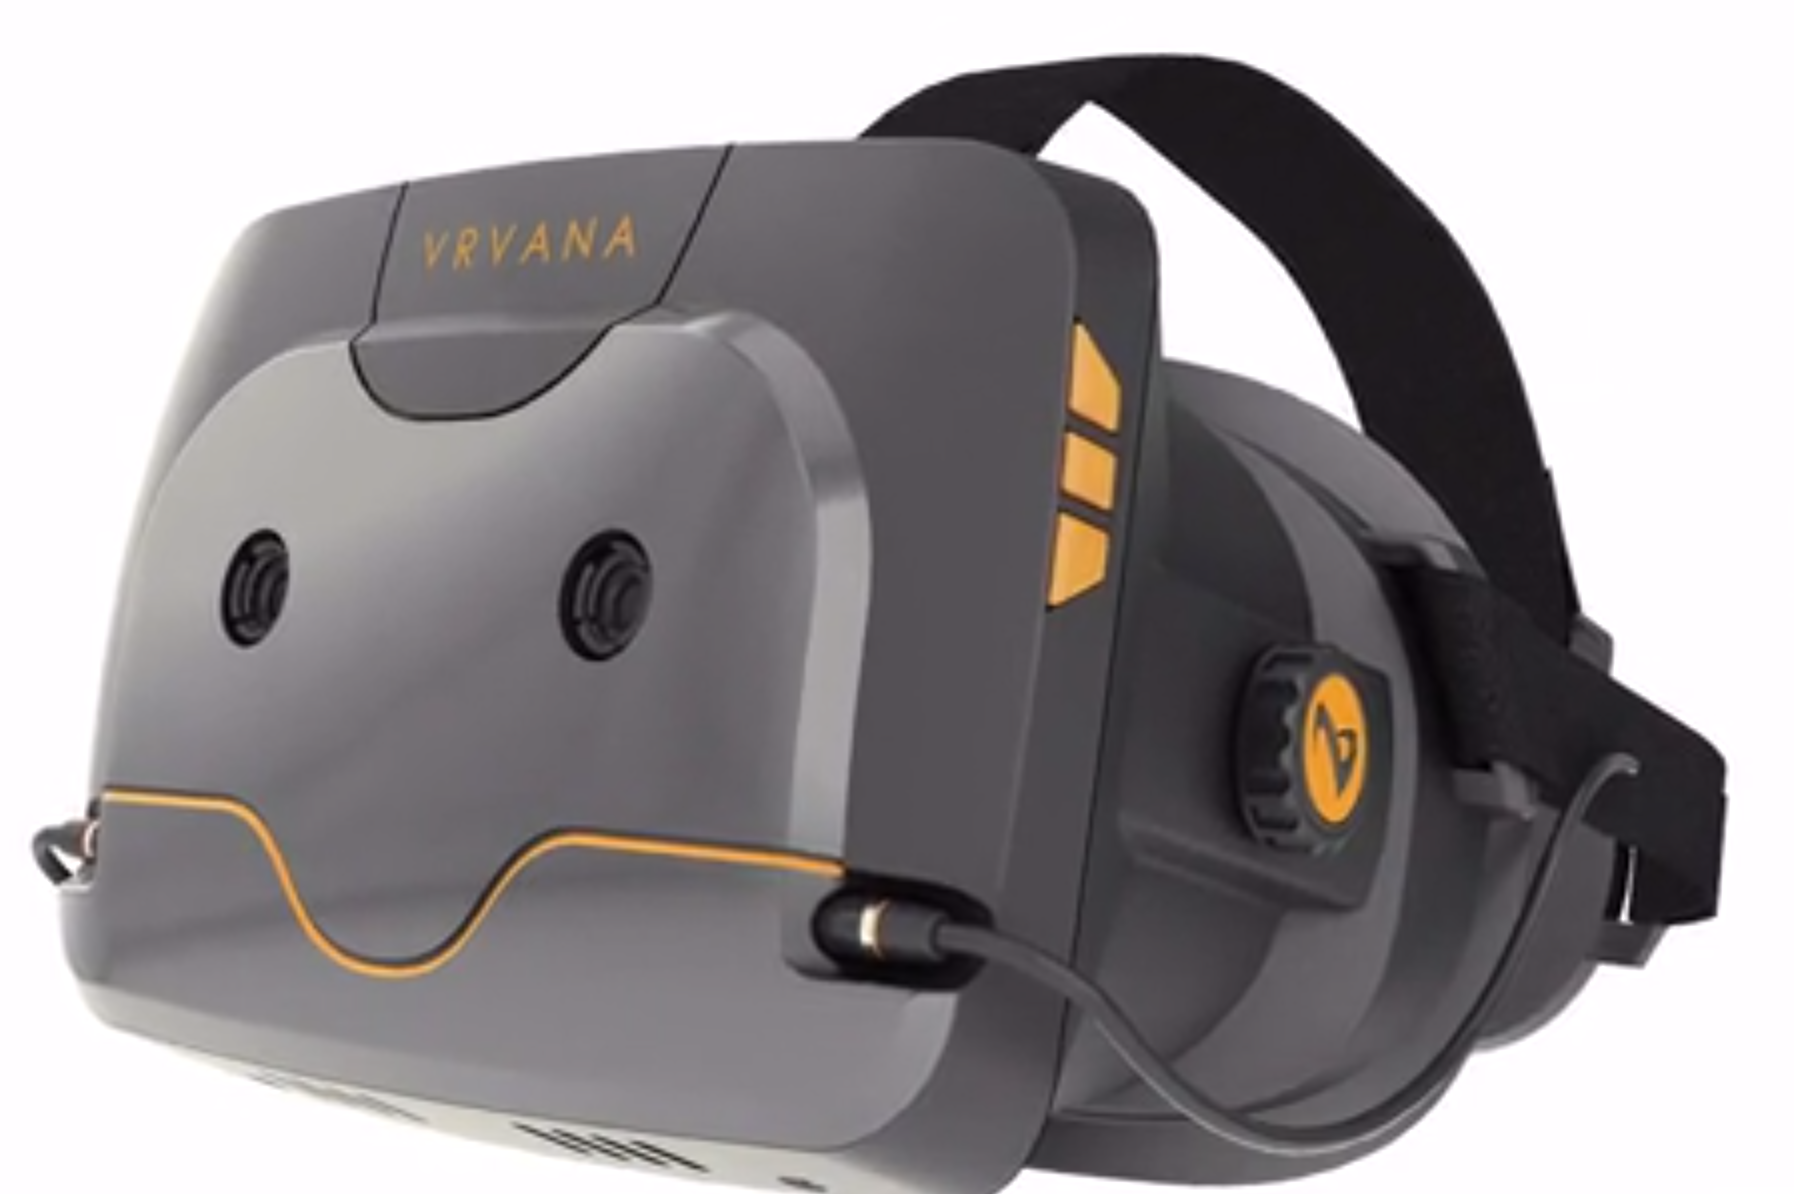 Vrvana Tosses Totem Headset Vr Ring as well Ideapad 110 Celeron further Watch further Walmart To Pricematch Target Best Buy Black Friday Deals One Week Early together with Cover Lenovo A2010 Cover. on samsung tv external speakers